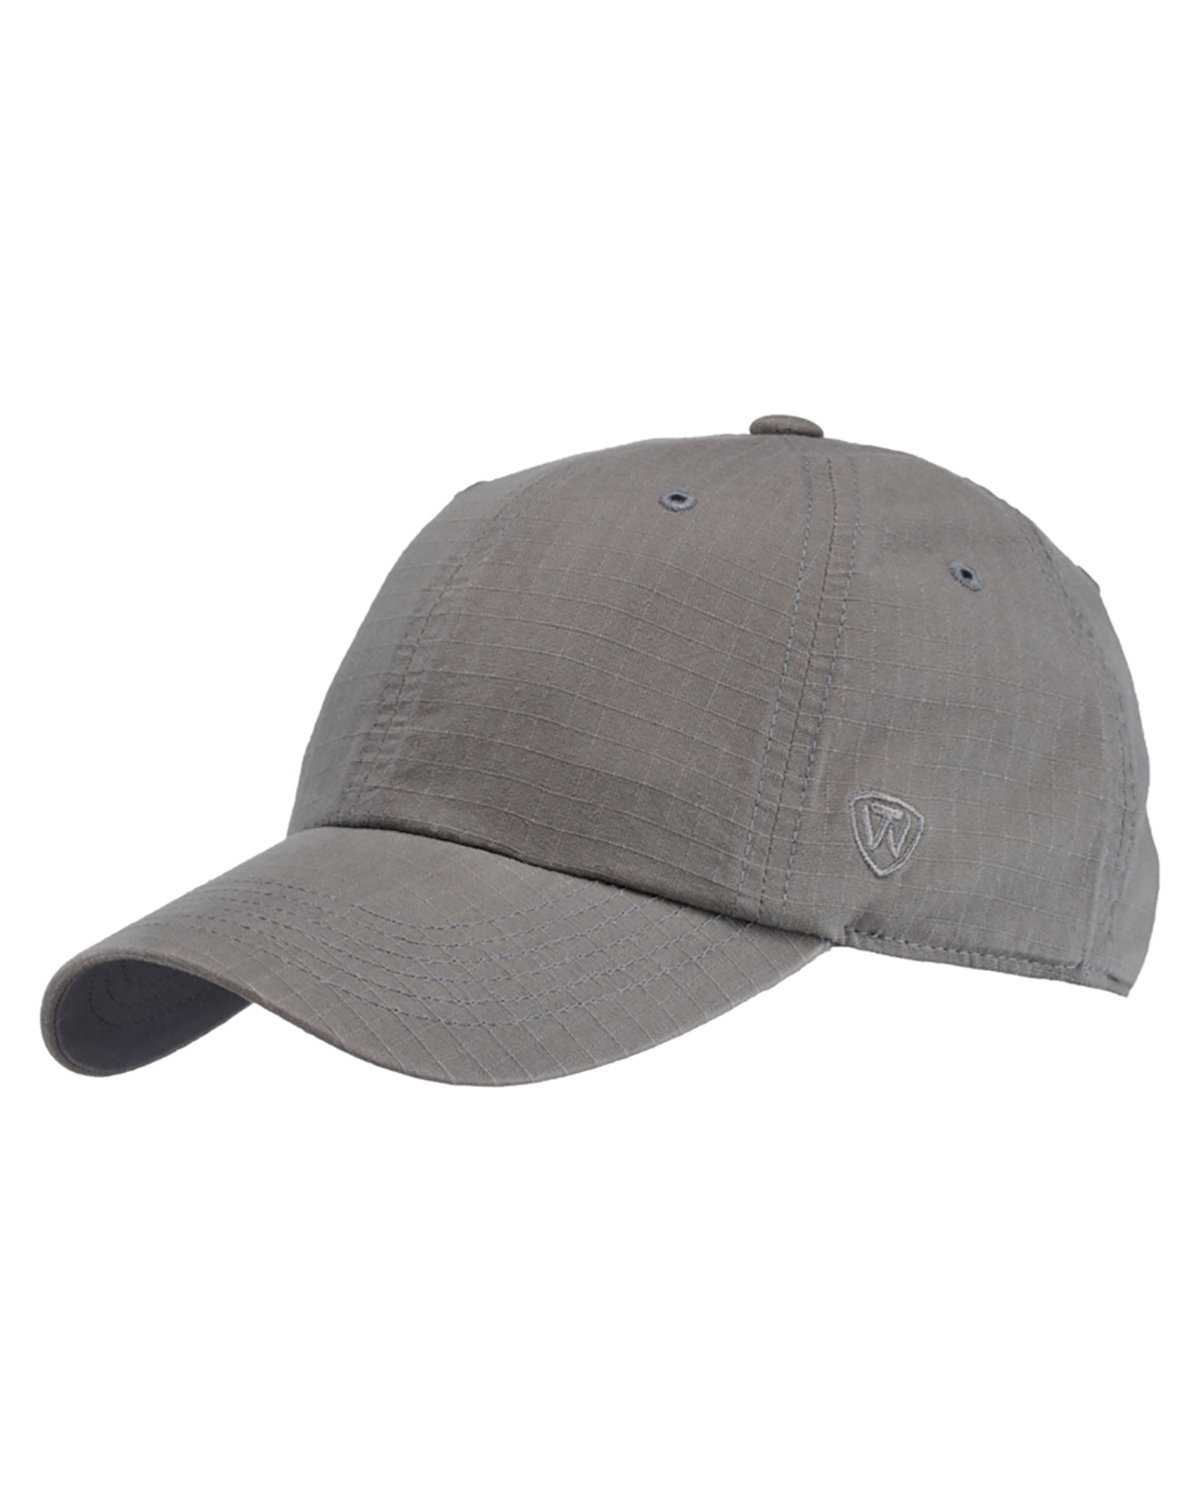 Top Of The World Ripper Washed Cotton Ripstop Hat GREY